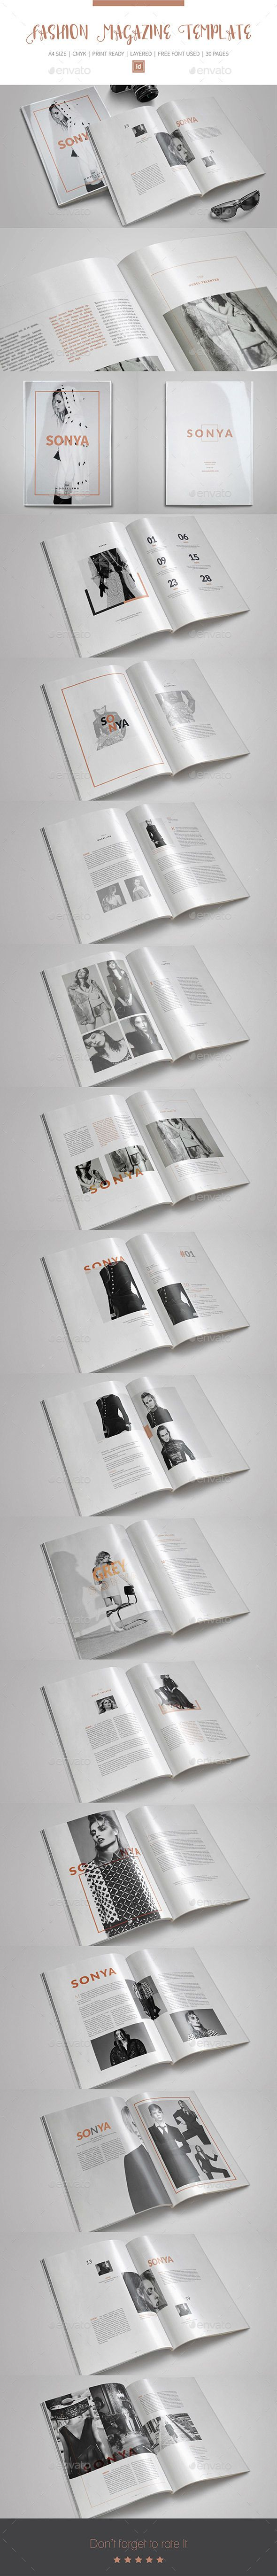 Fashion InDesign Magazine Template | Indesign magazine templates ...